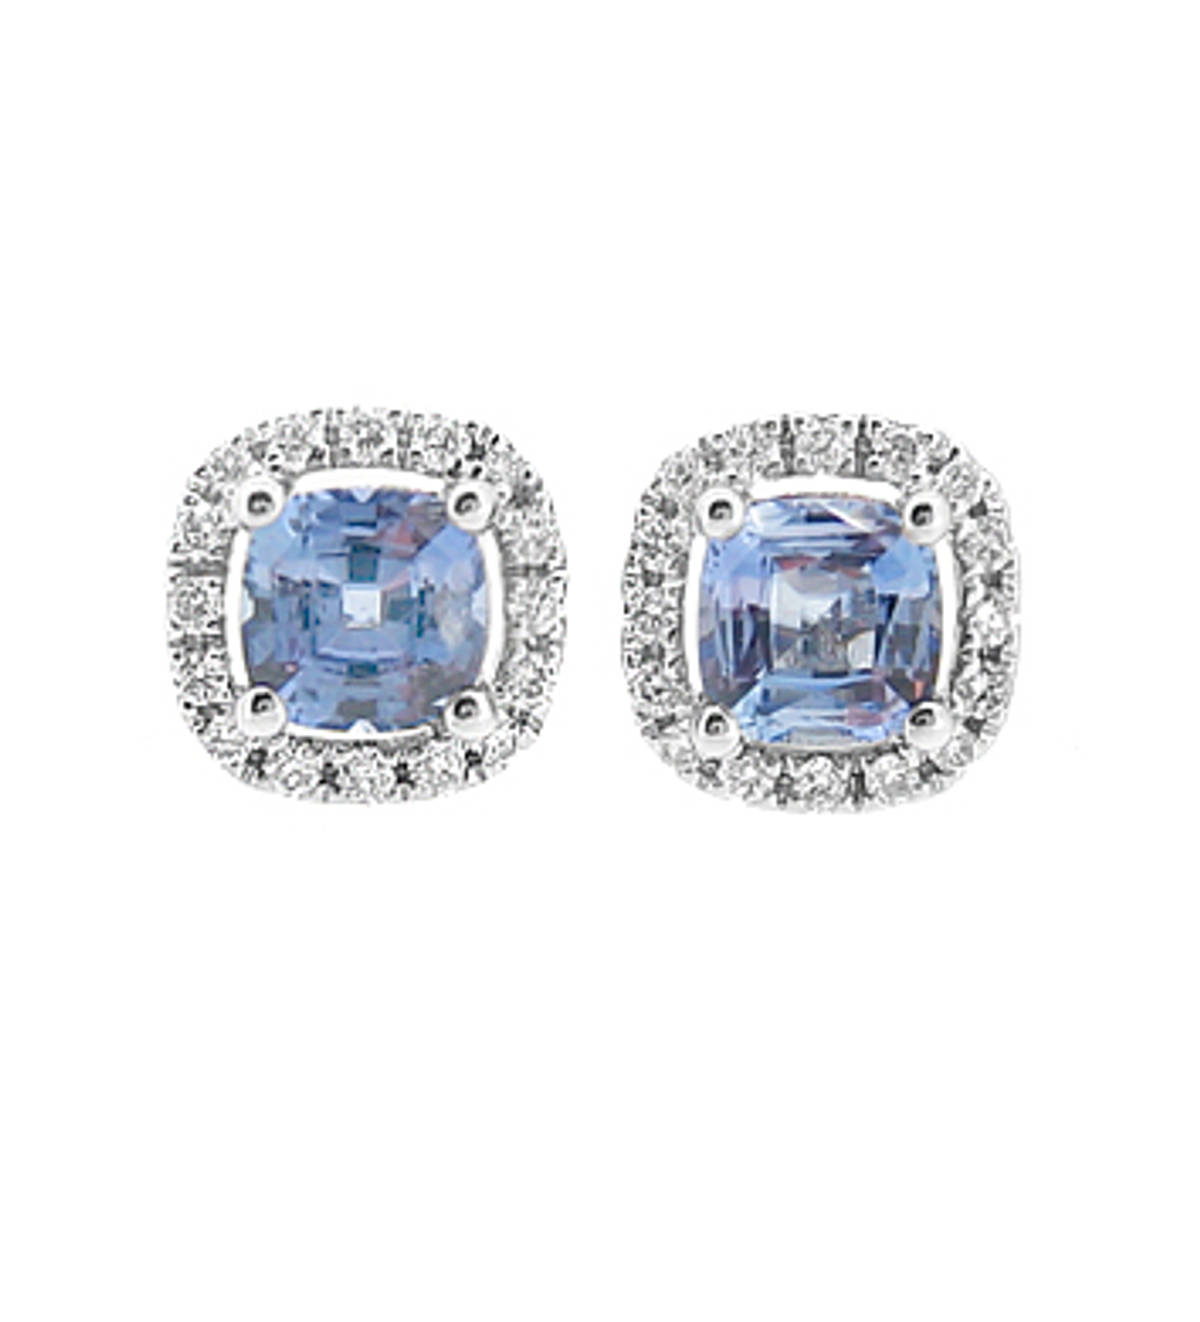 CUSHION SHAPE SAPPHIRE AND BRILLIANT CUT DIAMOND CLUSTER STUD EARRINGSPictured item: sapphire 1.48ct/diamonds 0.24ct set in 18k white gold